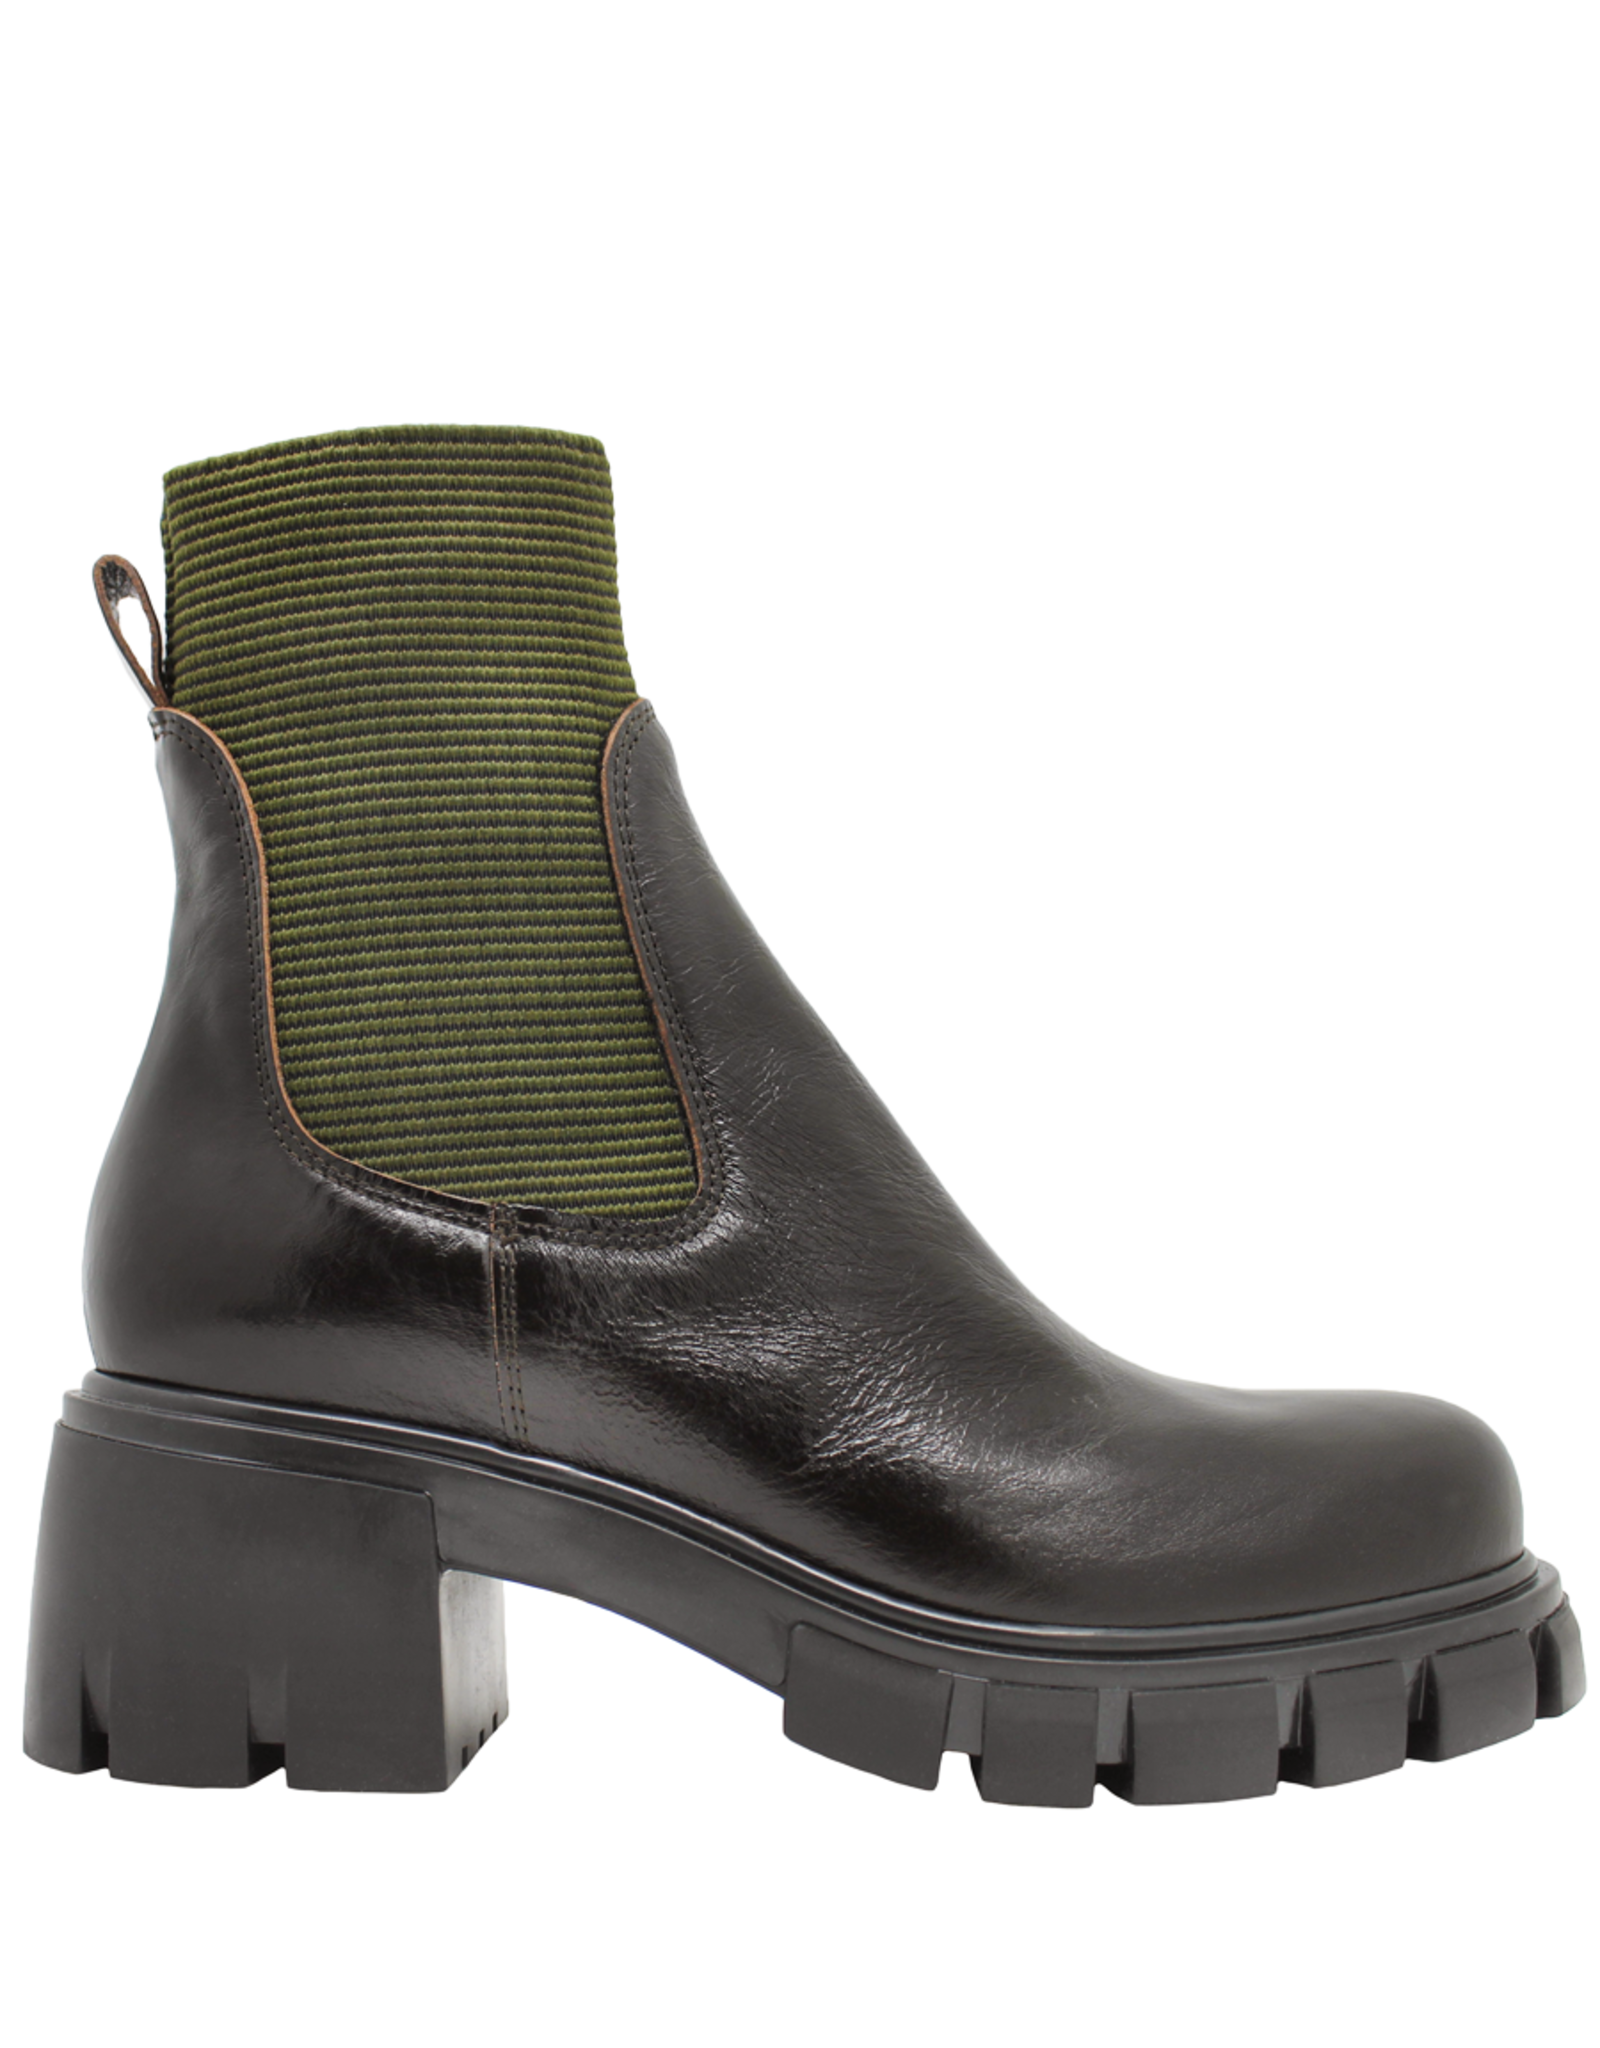 Now Now Brown Chelsea Tread Sole 7068